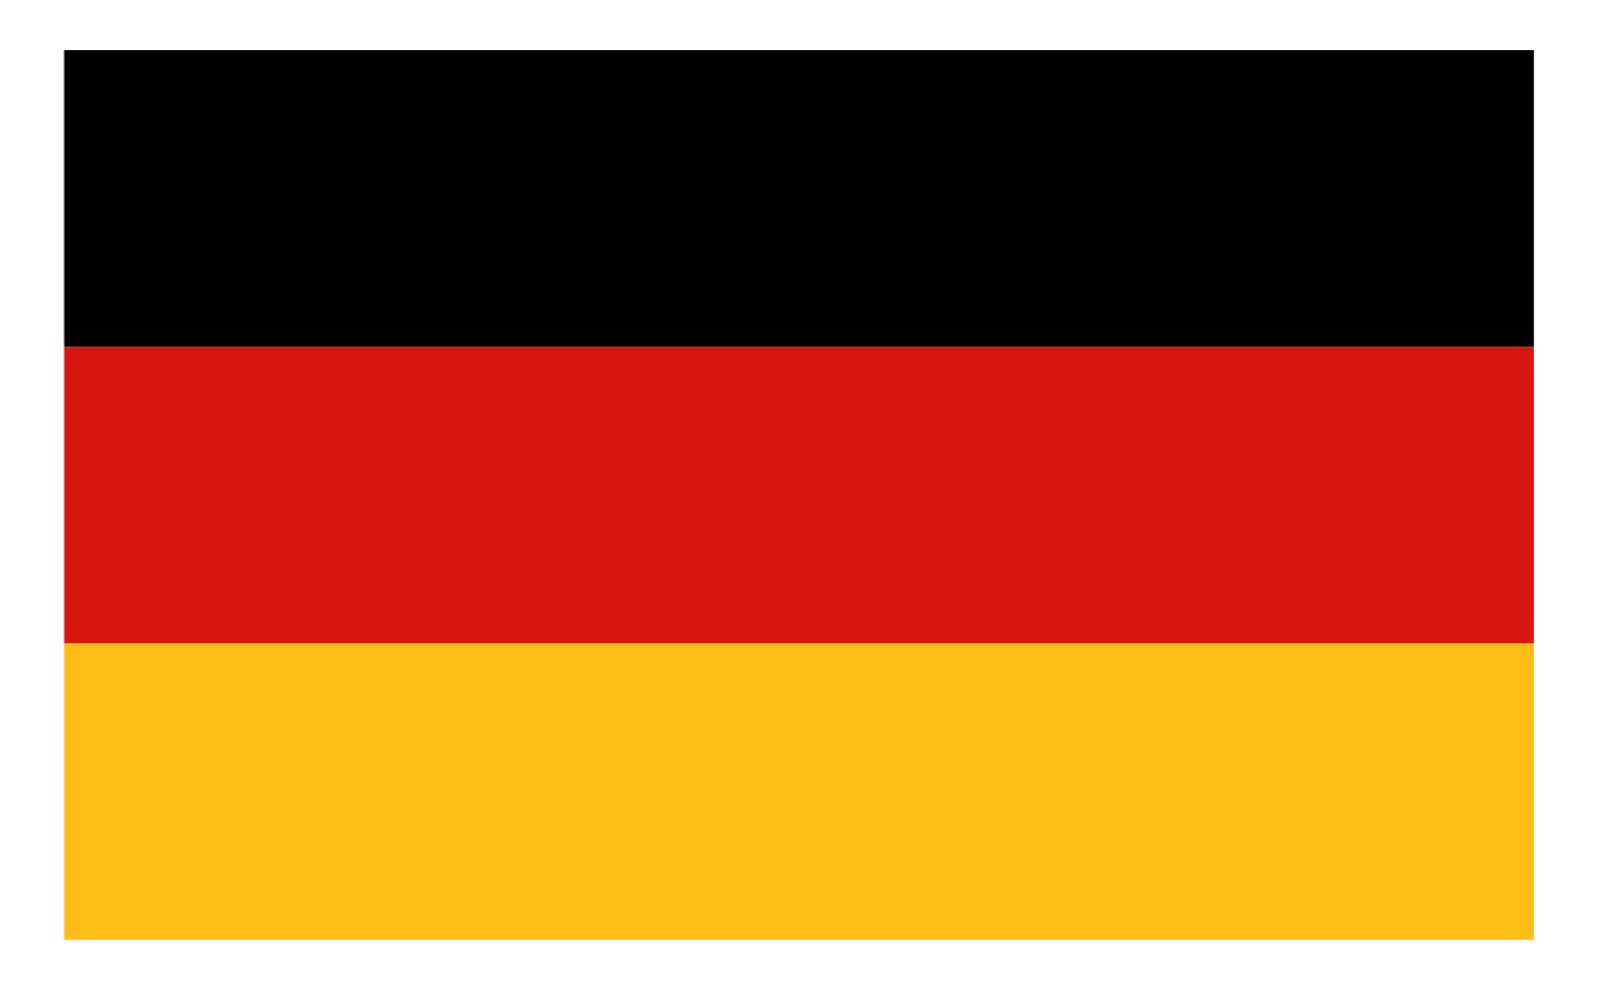 deutschland flag wallpaper - photo #33